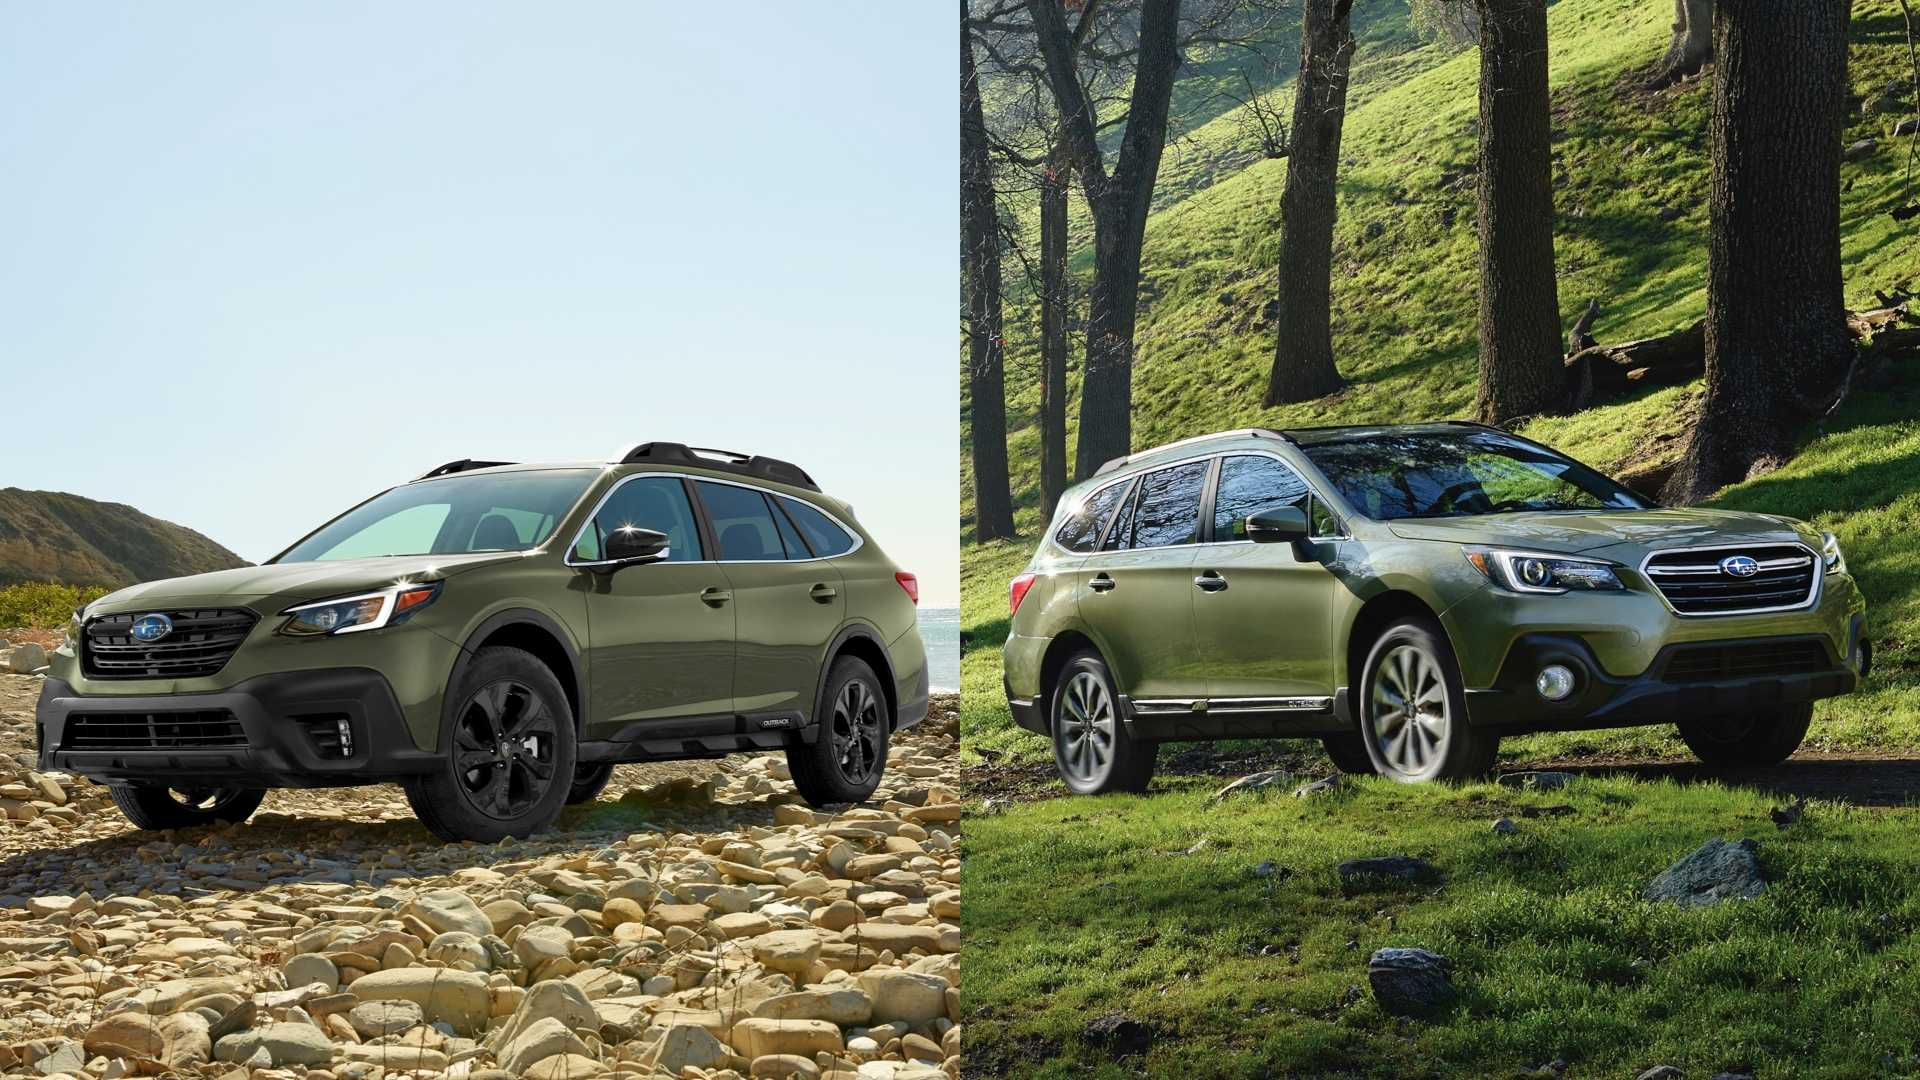 2020 Subaru Outback: See The Changes Sideside - 2022 Subaru Outback 2.5 Limited Performance Rumor, Changes